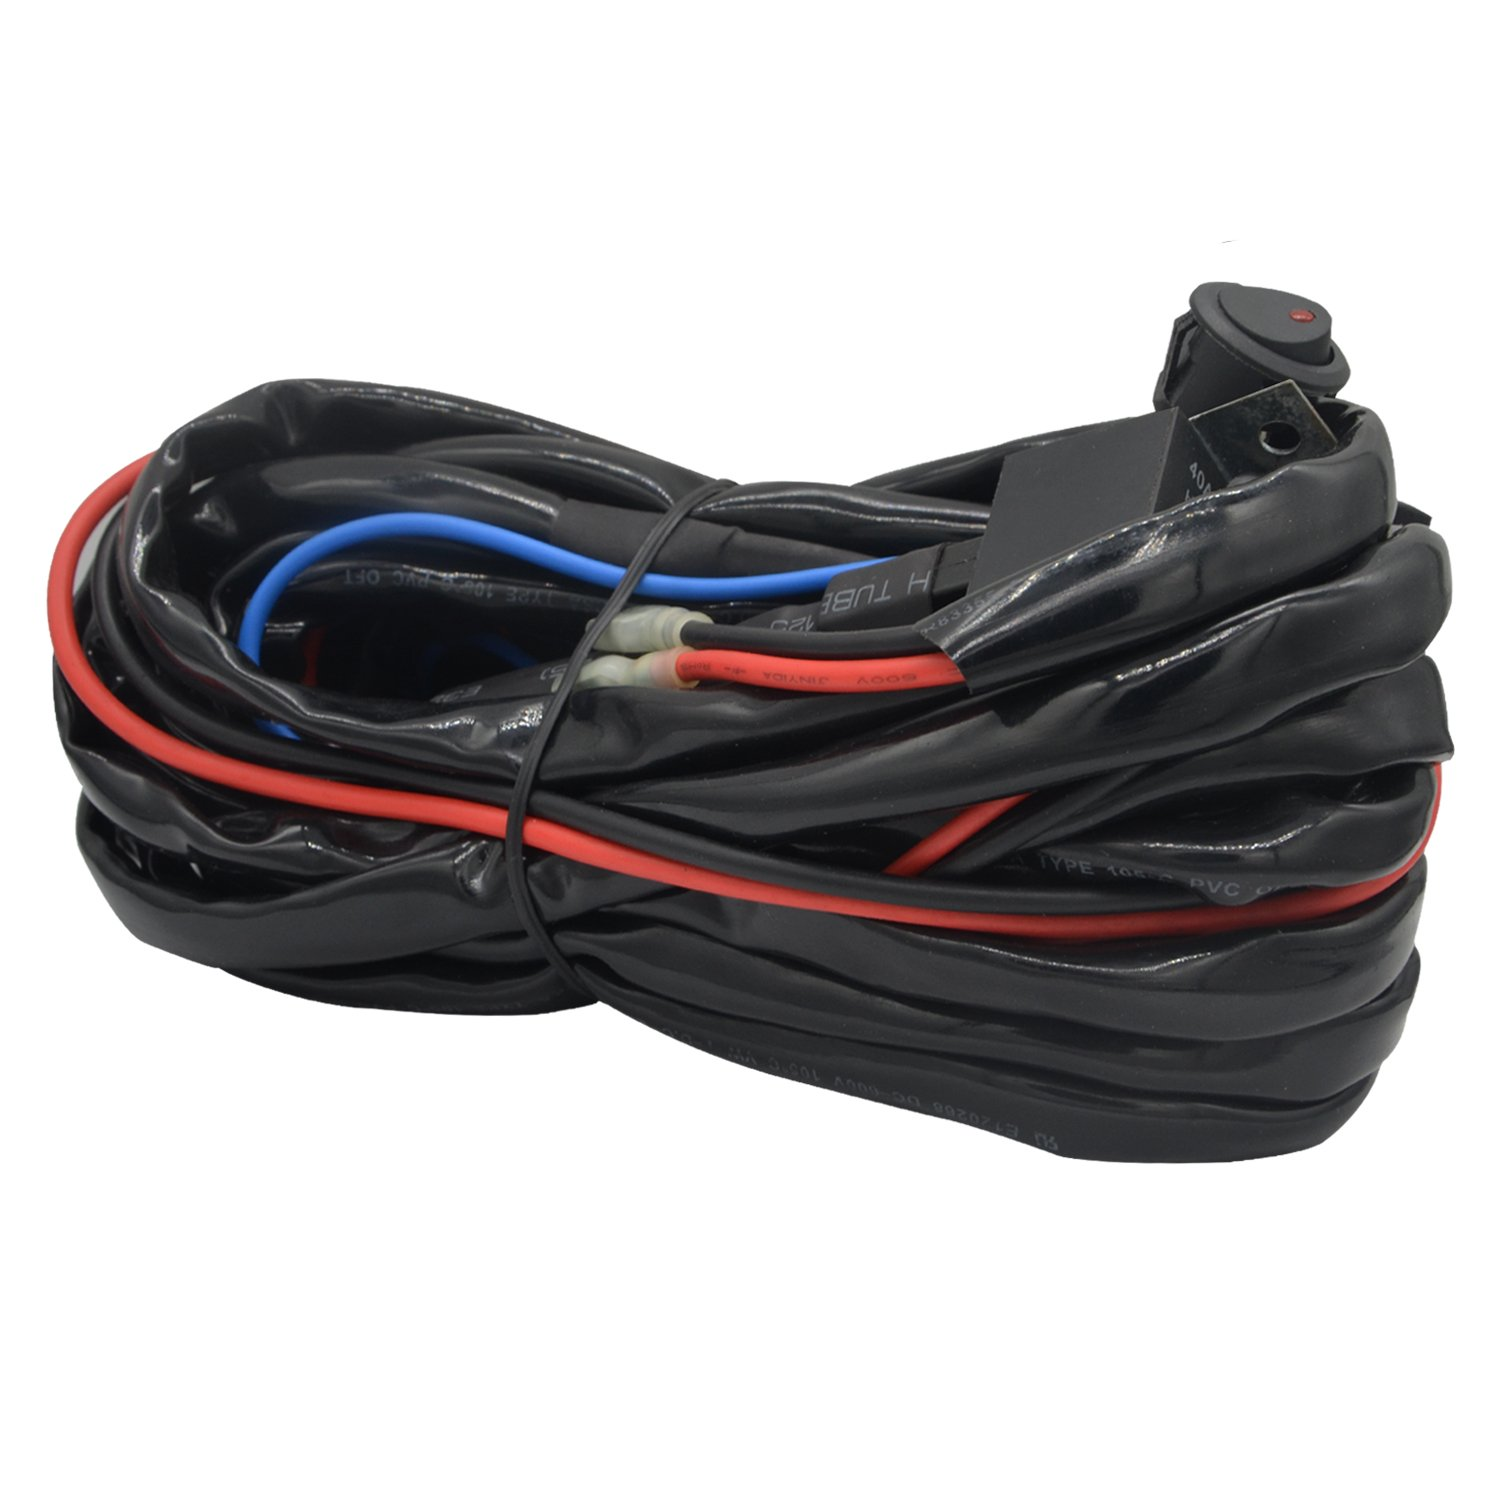 71hdbgsGjCL._SL1500_ amazon com wiring harnesses electrical automotive 2015 audi q7 trailer wiring harness at couponss.co